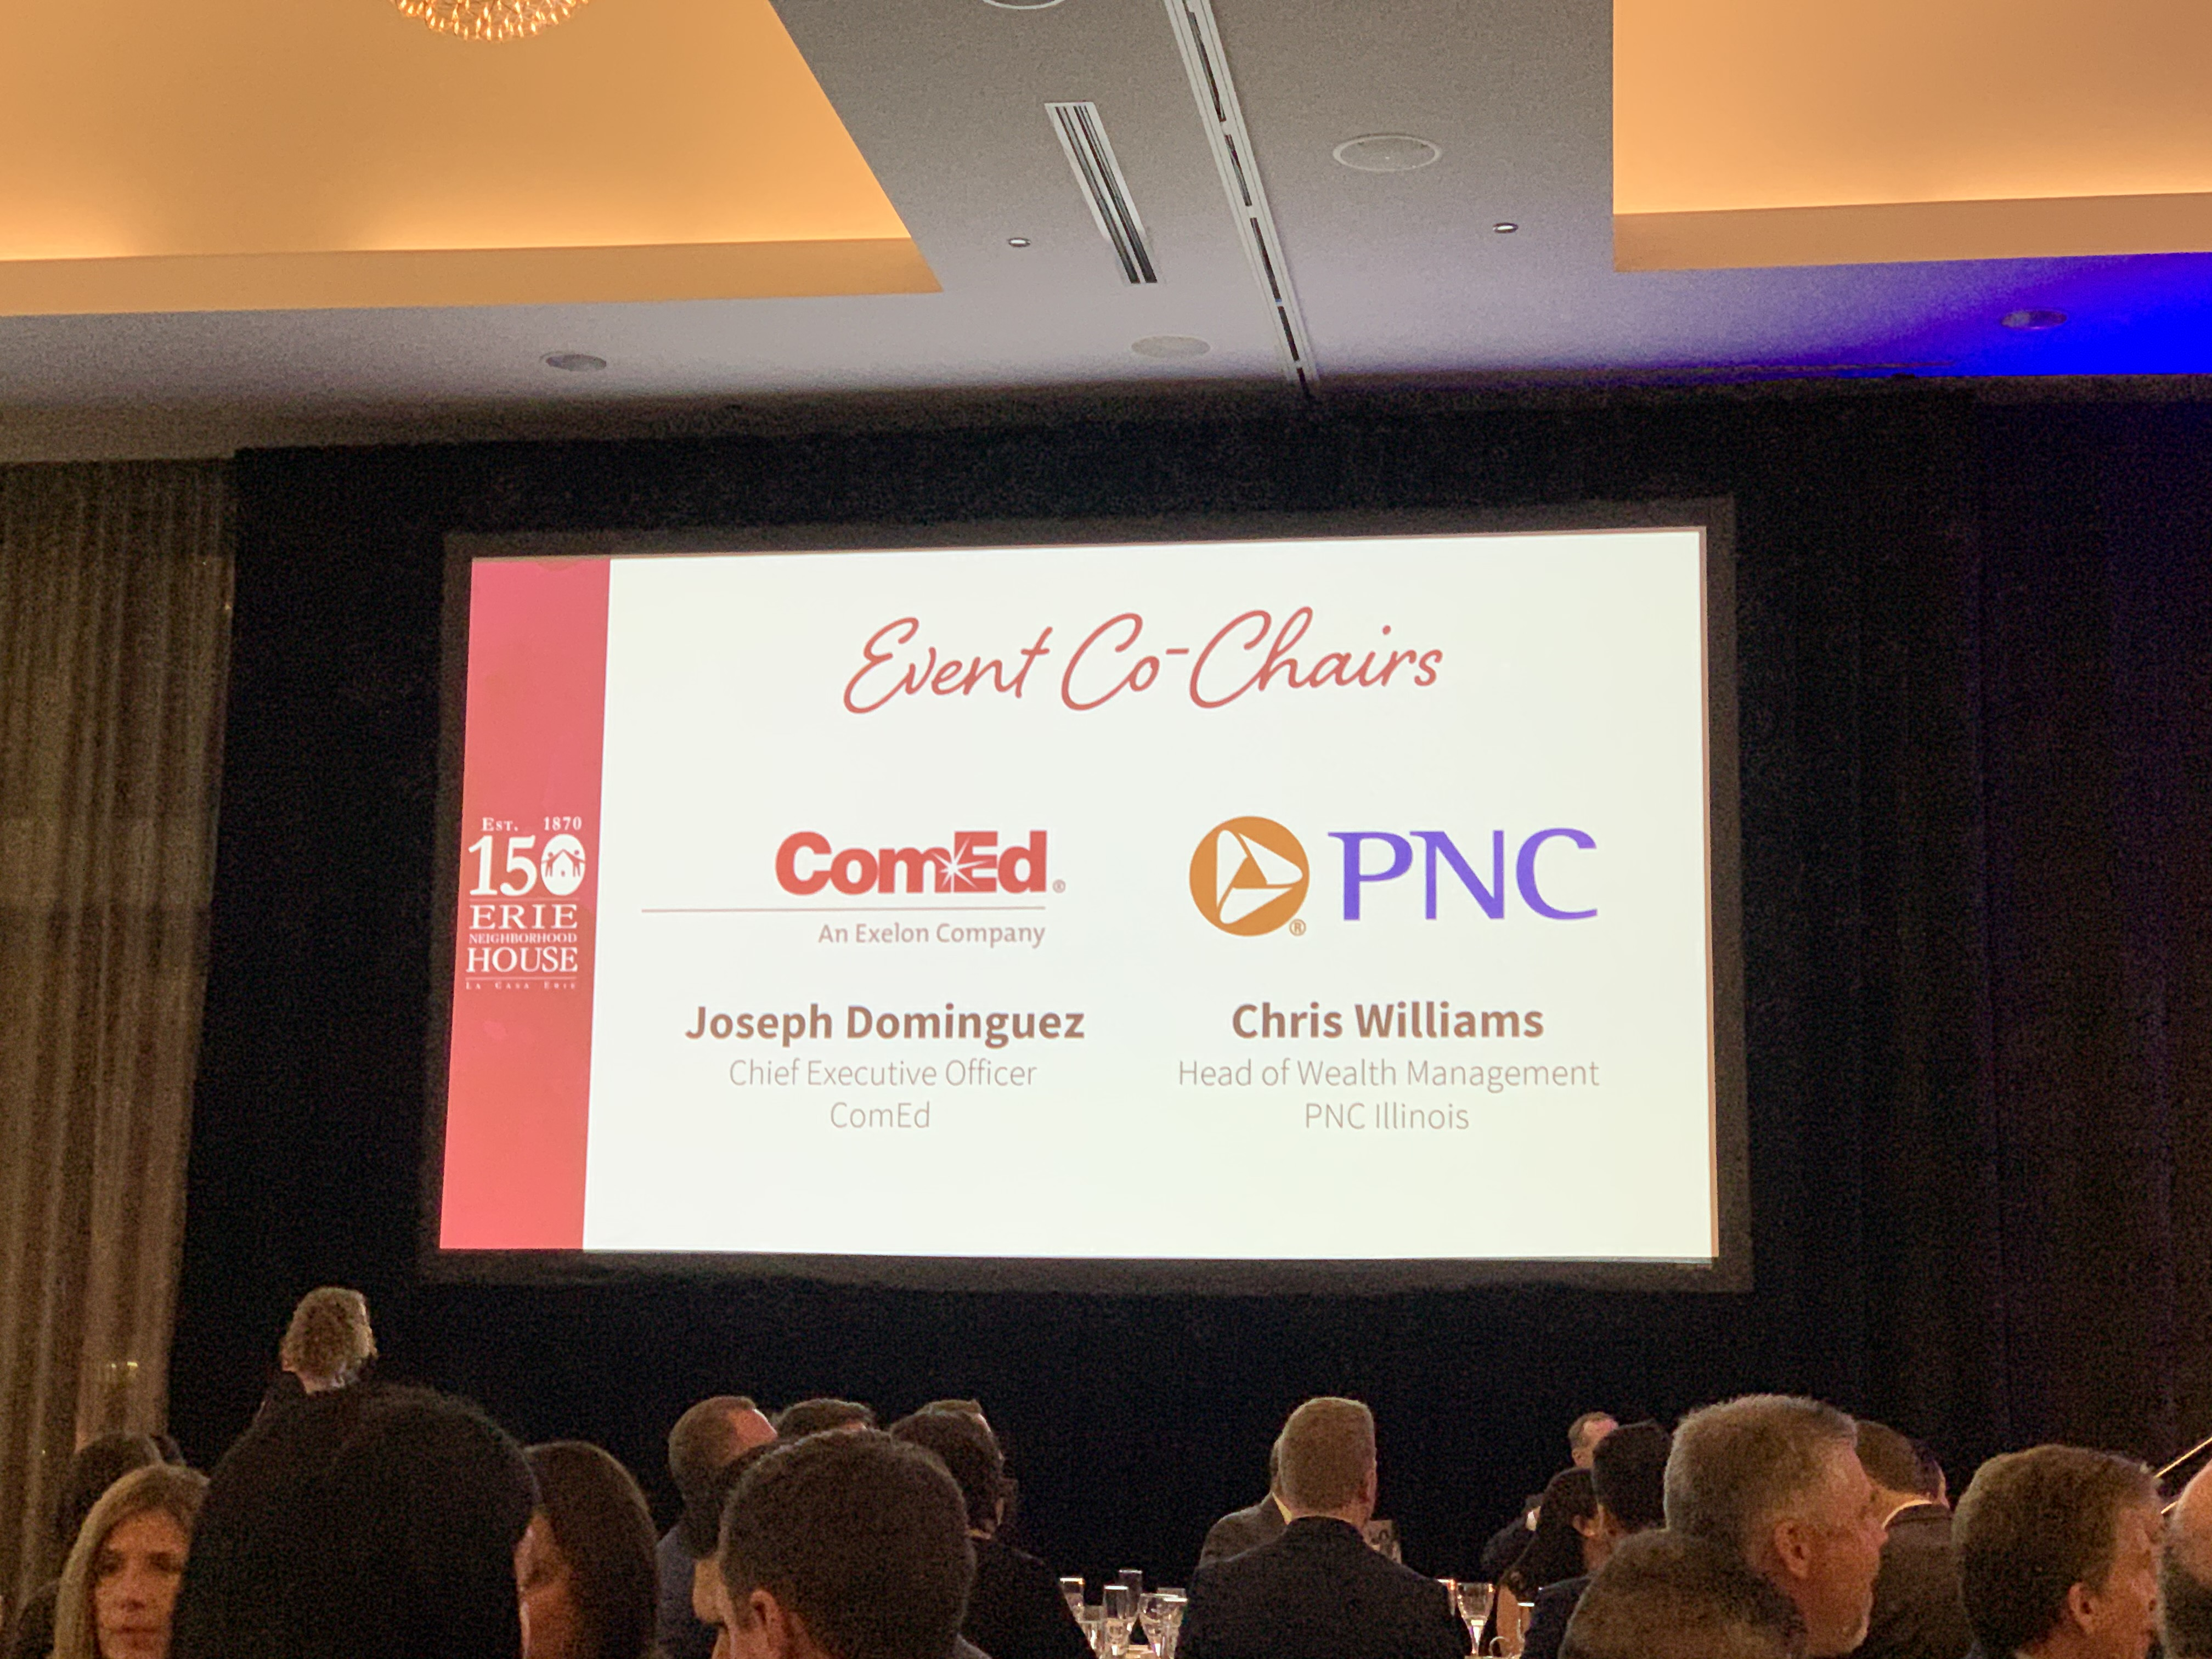 Event co-chairs were ComEd CEO Joe Dominguez and PNC Illinois Head of Wealth Management Chris Williams